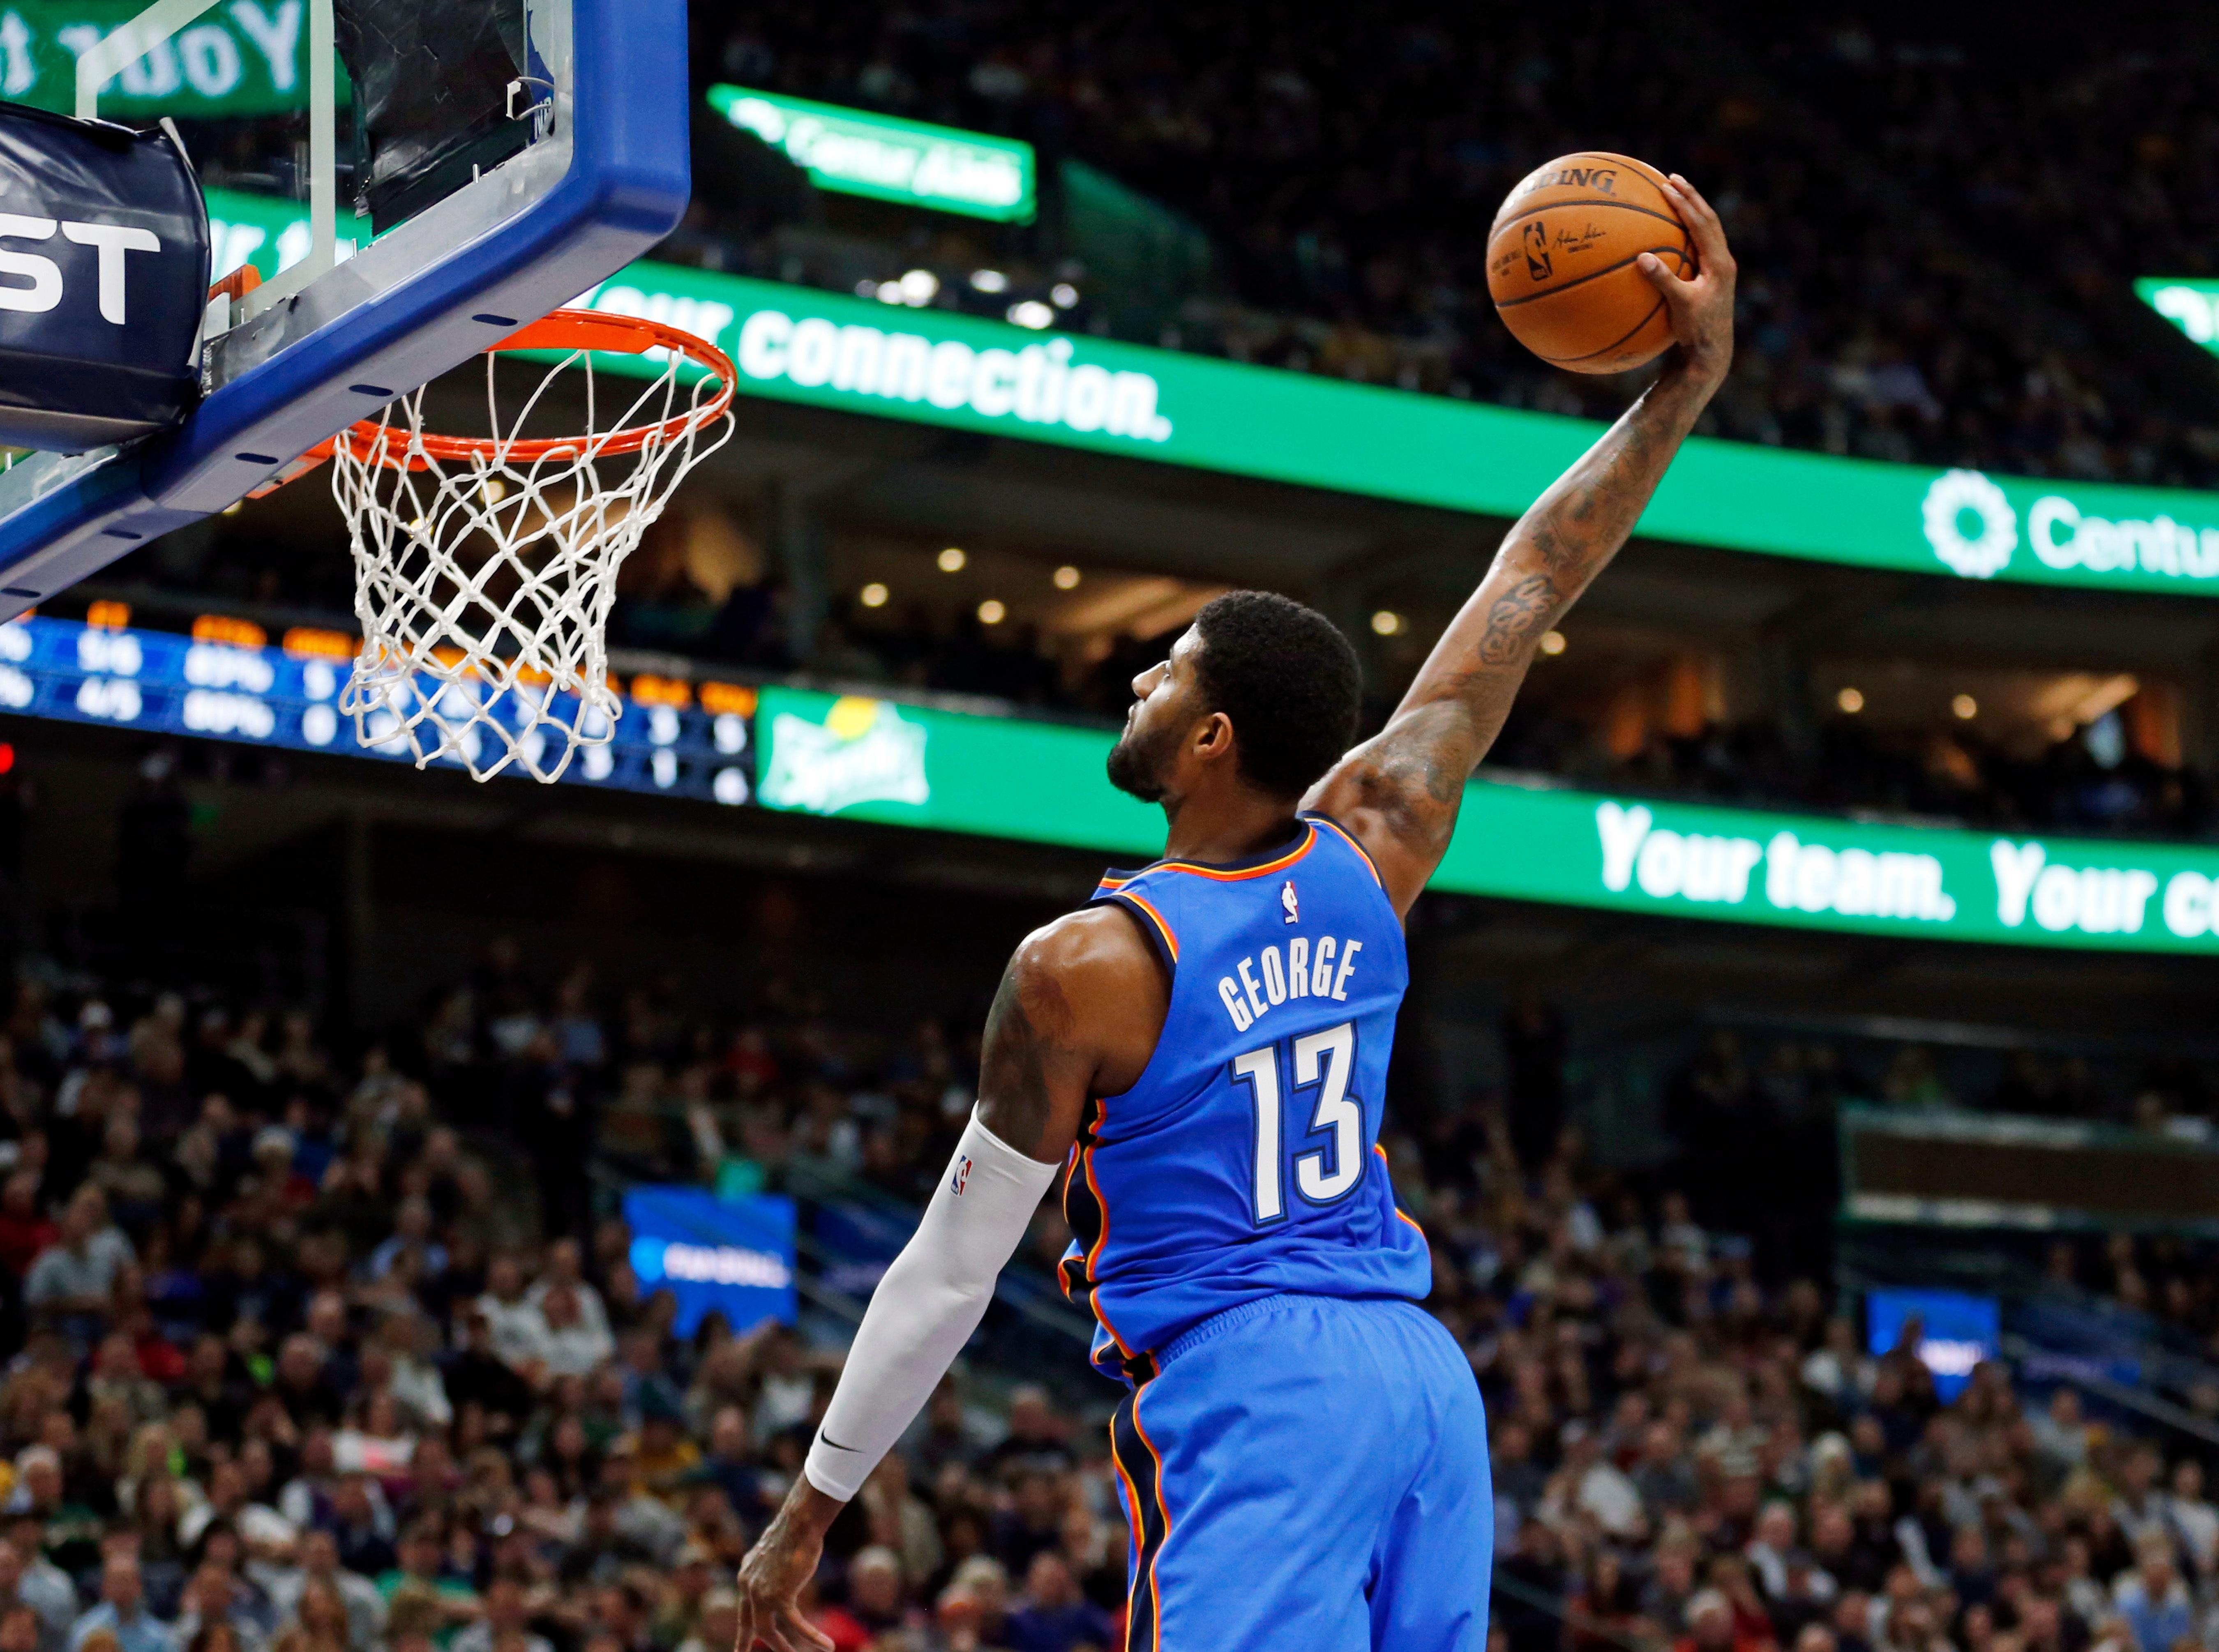 Oklahoma City Thunder forward Paul George (13) dunks against the Utah Jazz in the first half during an NBA basketball game Saturday, Dec. 23, 2017, in Salt Lake City. (AP Photo/Rick Bowmer)